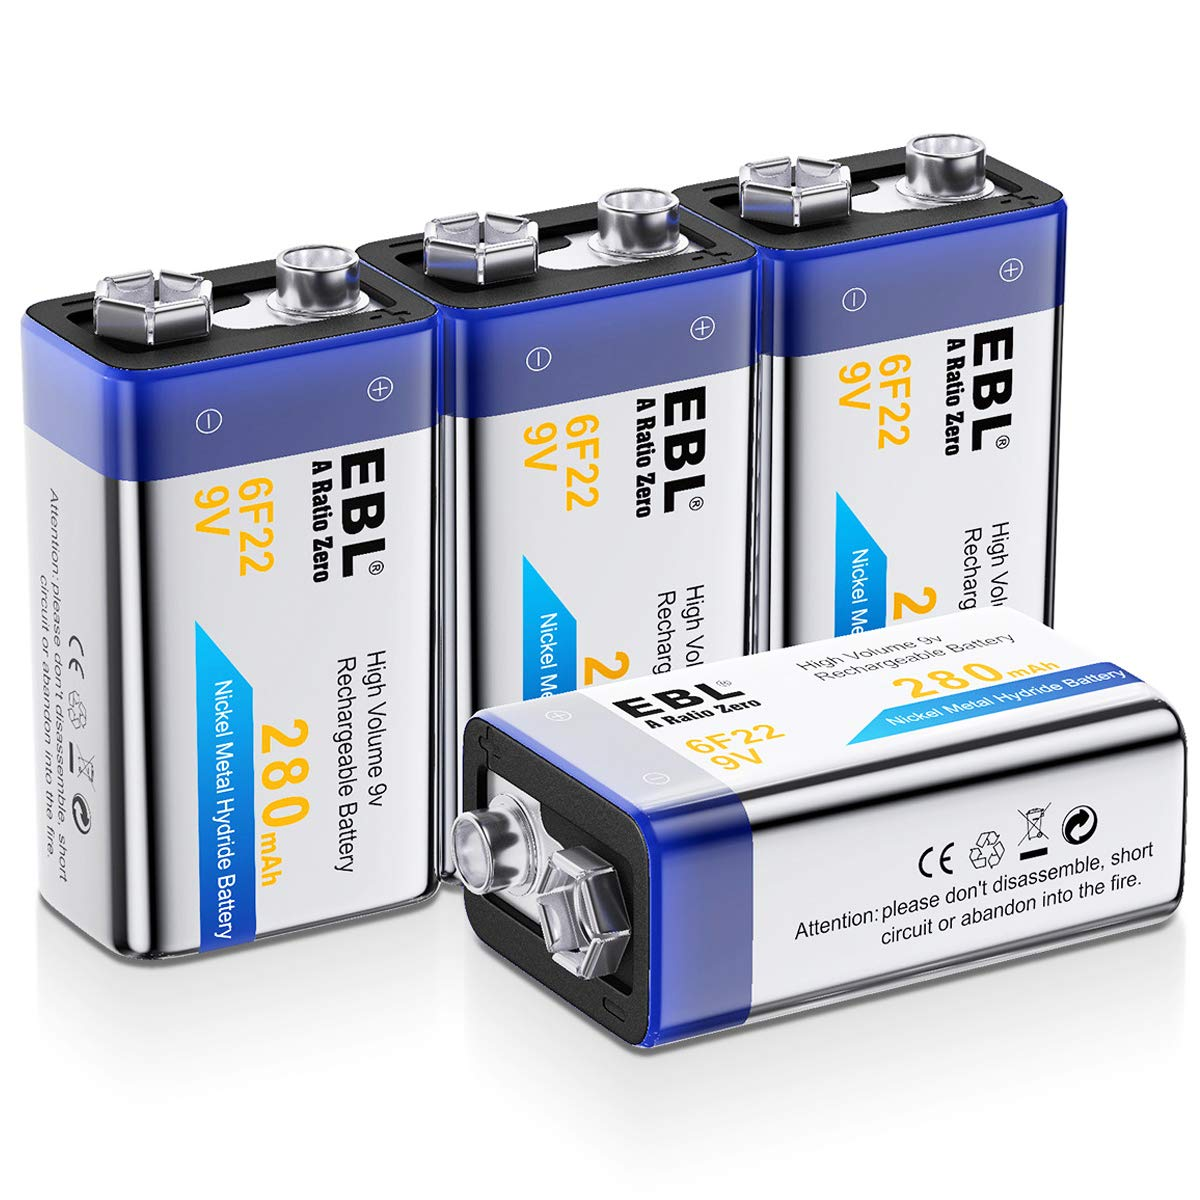 Please Check Out Nimhs New And >> Amazon Com Ebl 9v Rechargeable Batteries Nimh Everyday 280mah 9v